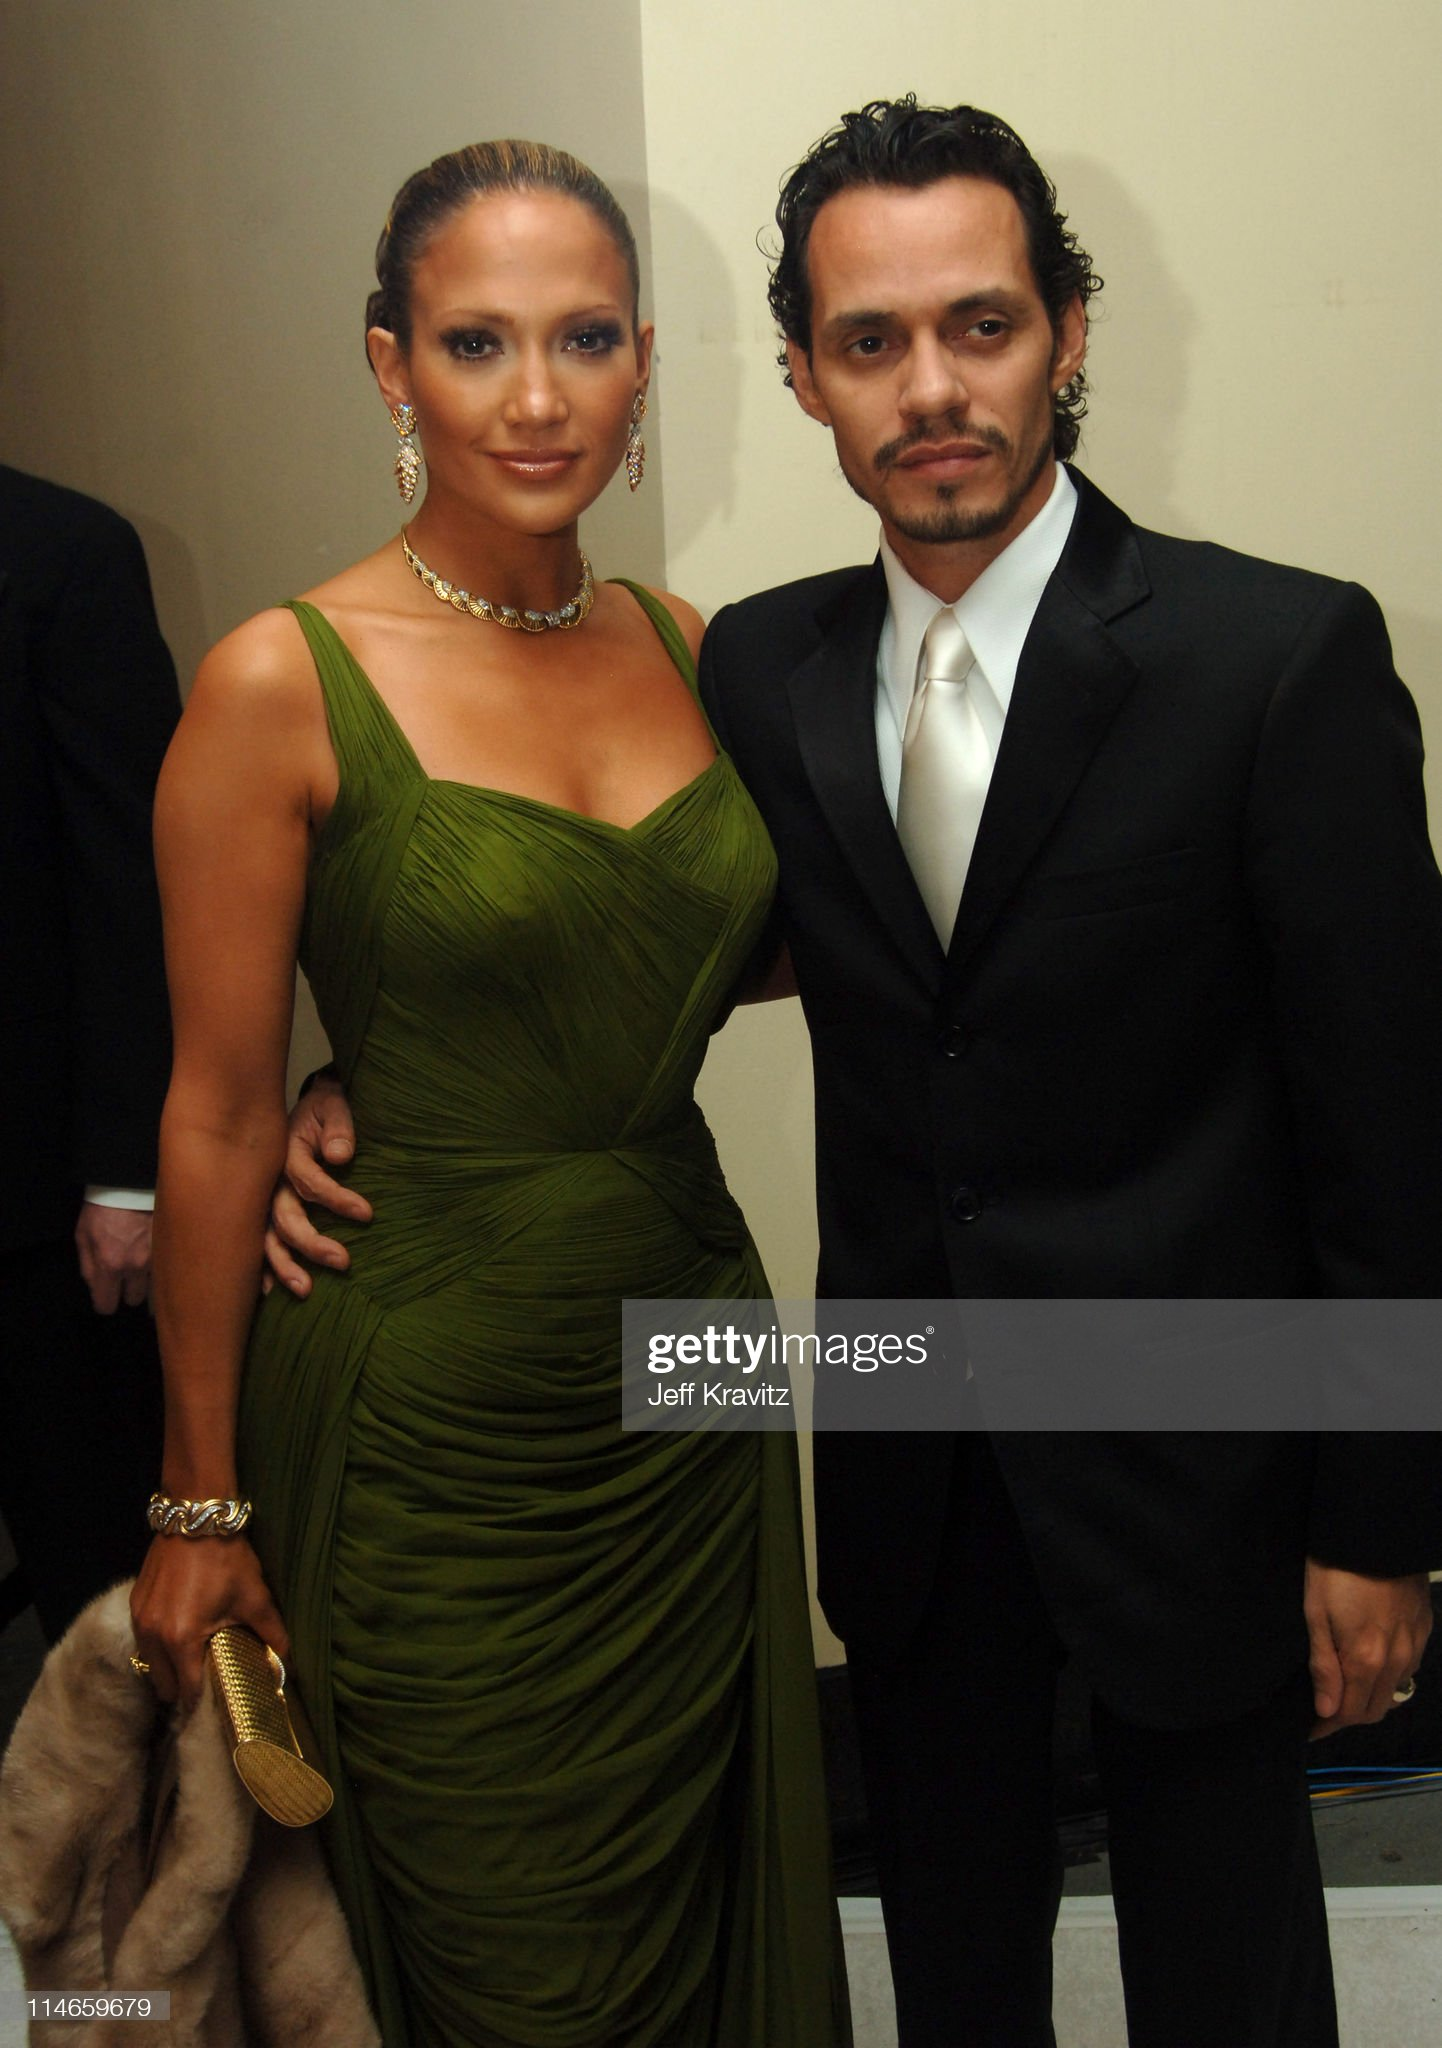 ¿Cuánto mide Marc Anthony? - Altura - Real height Jennifer-lopez-and-marc-anthony-during-the-78th-annual-academy-awards-picture-id114659679?s=2048x2048